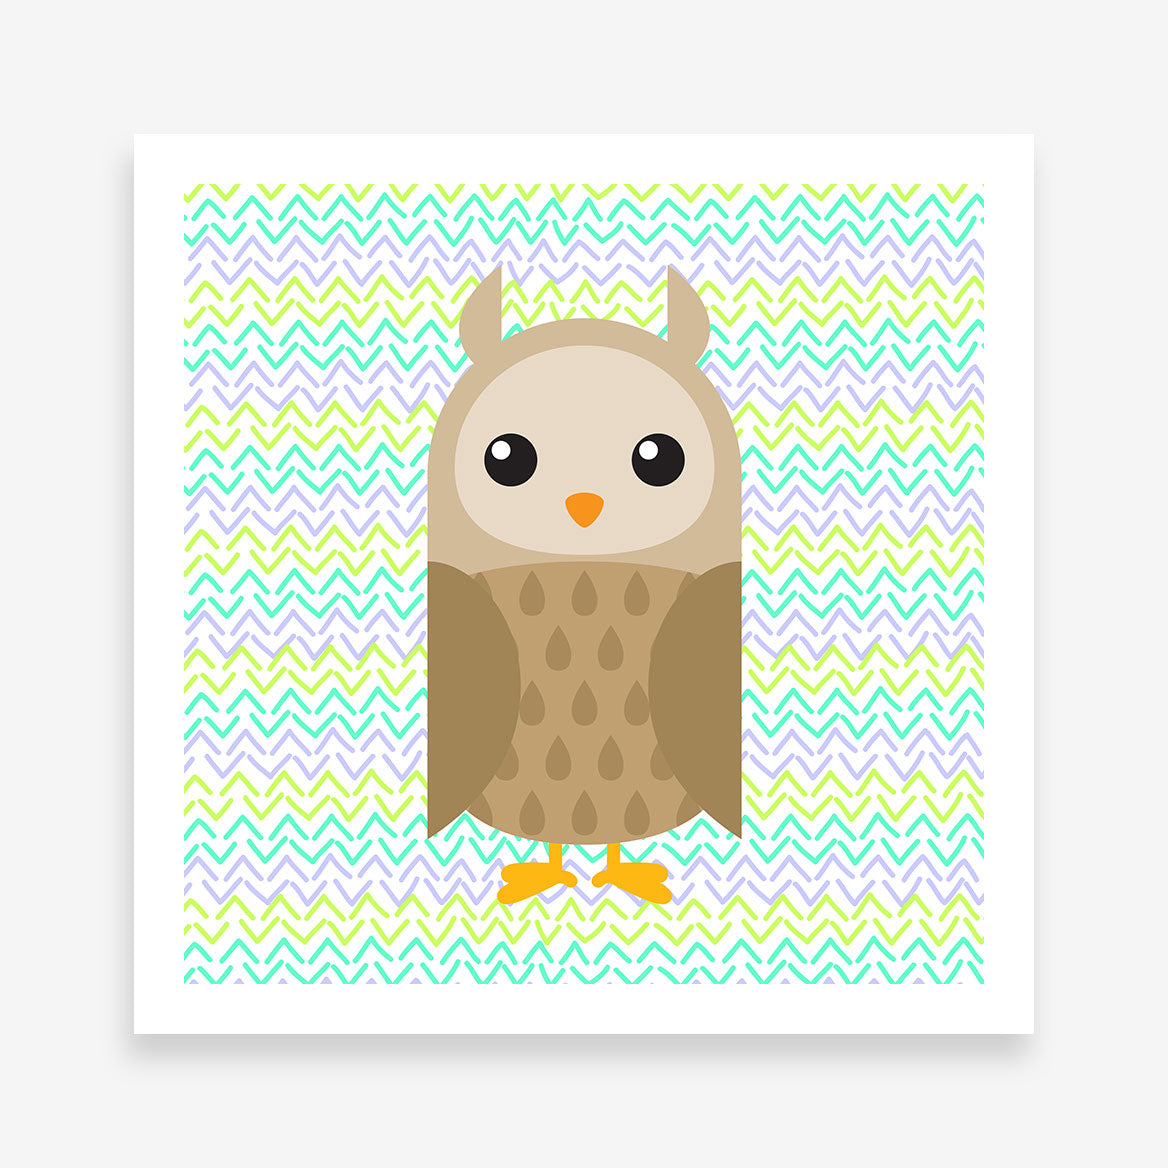 Poster print with a brown owl on green patterned background